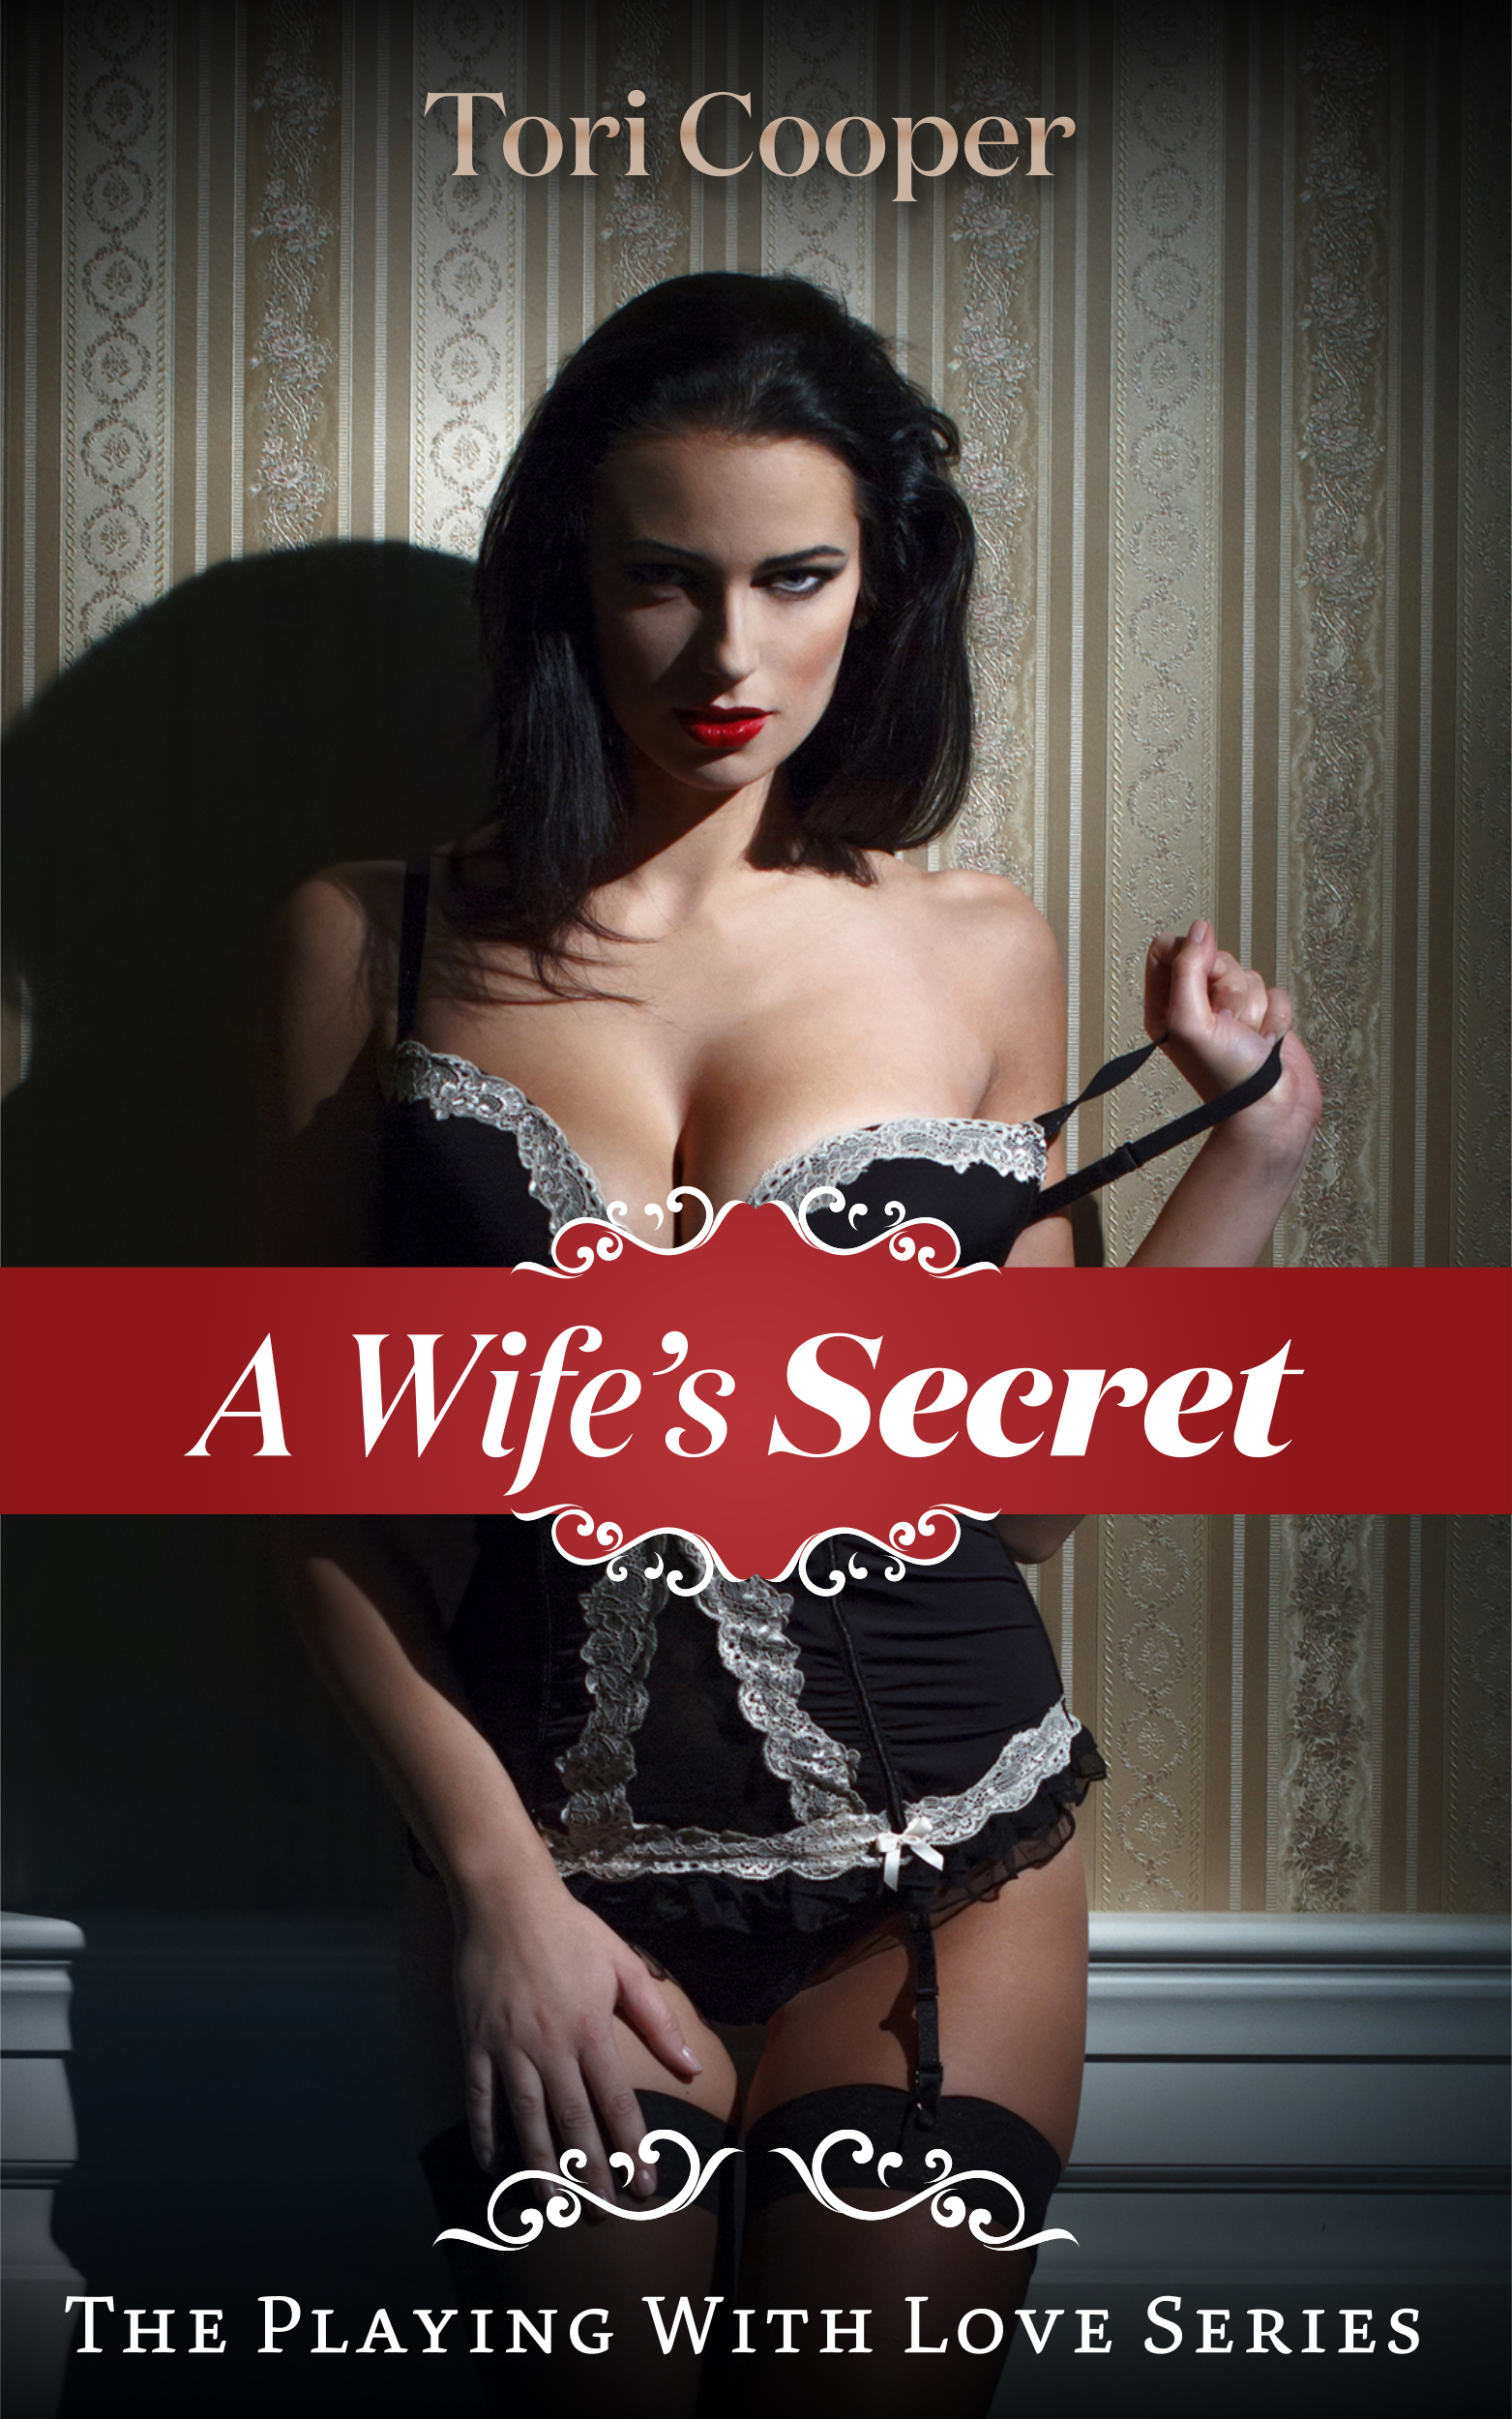 A Wife's Secret - High Resolution